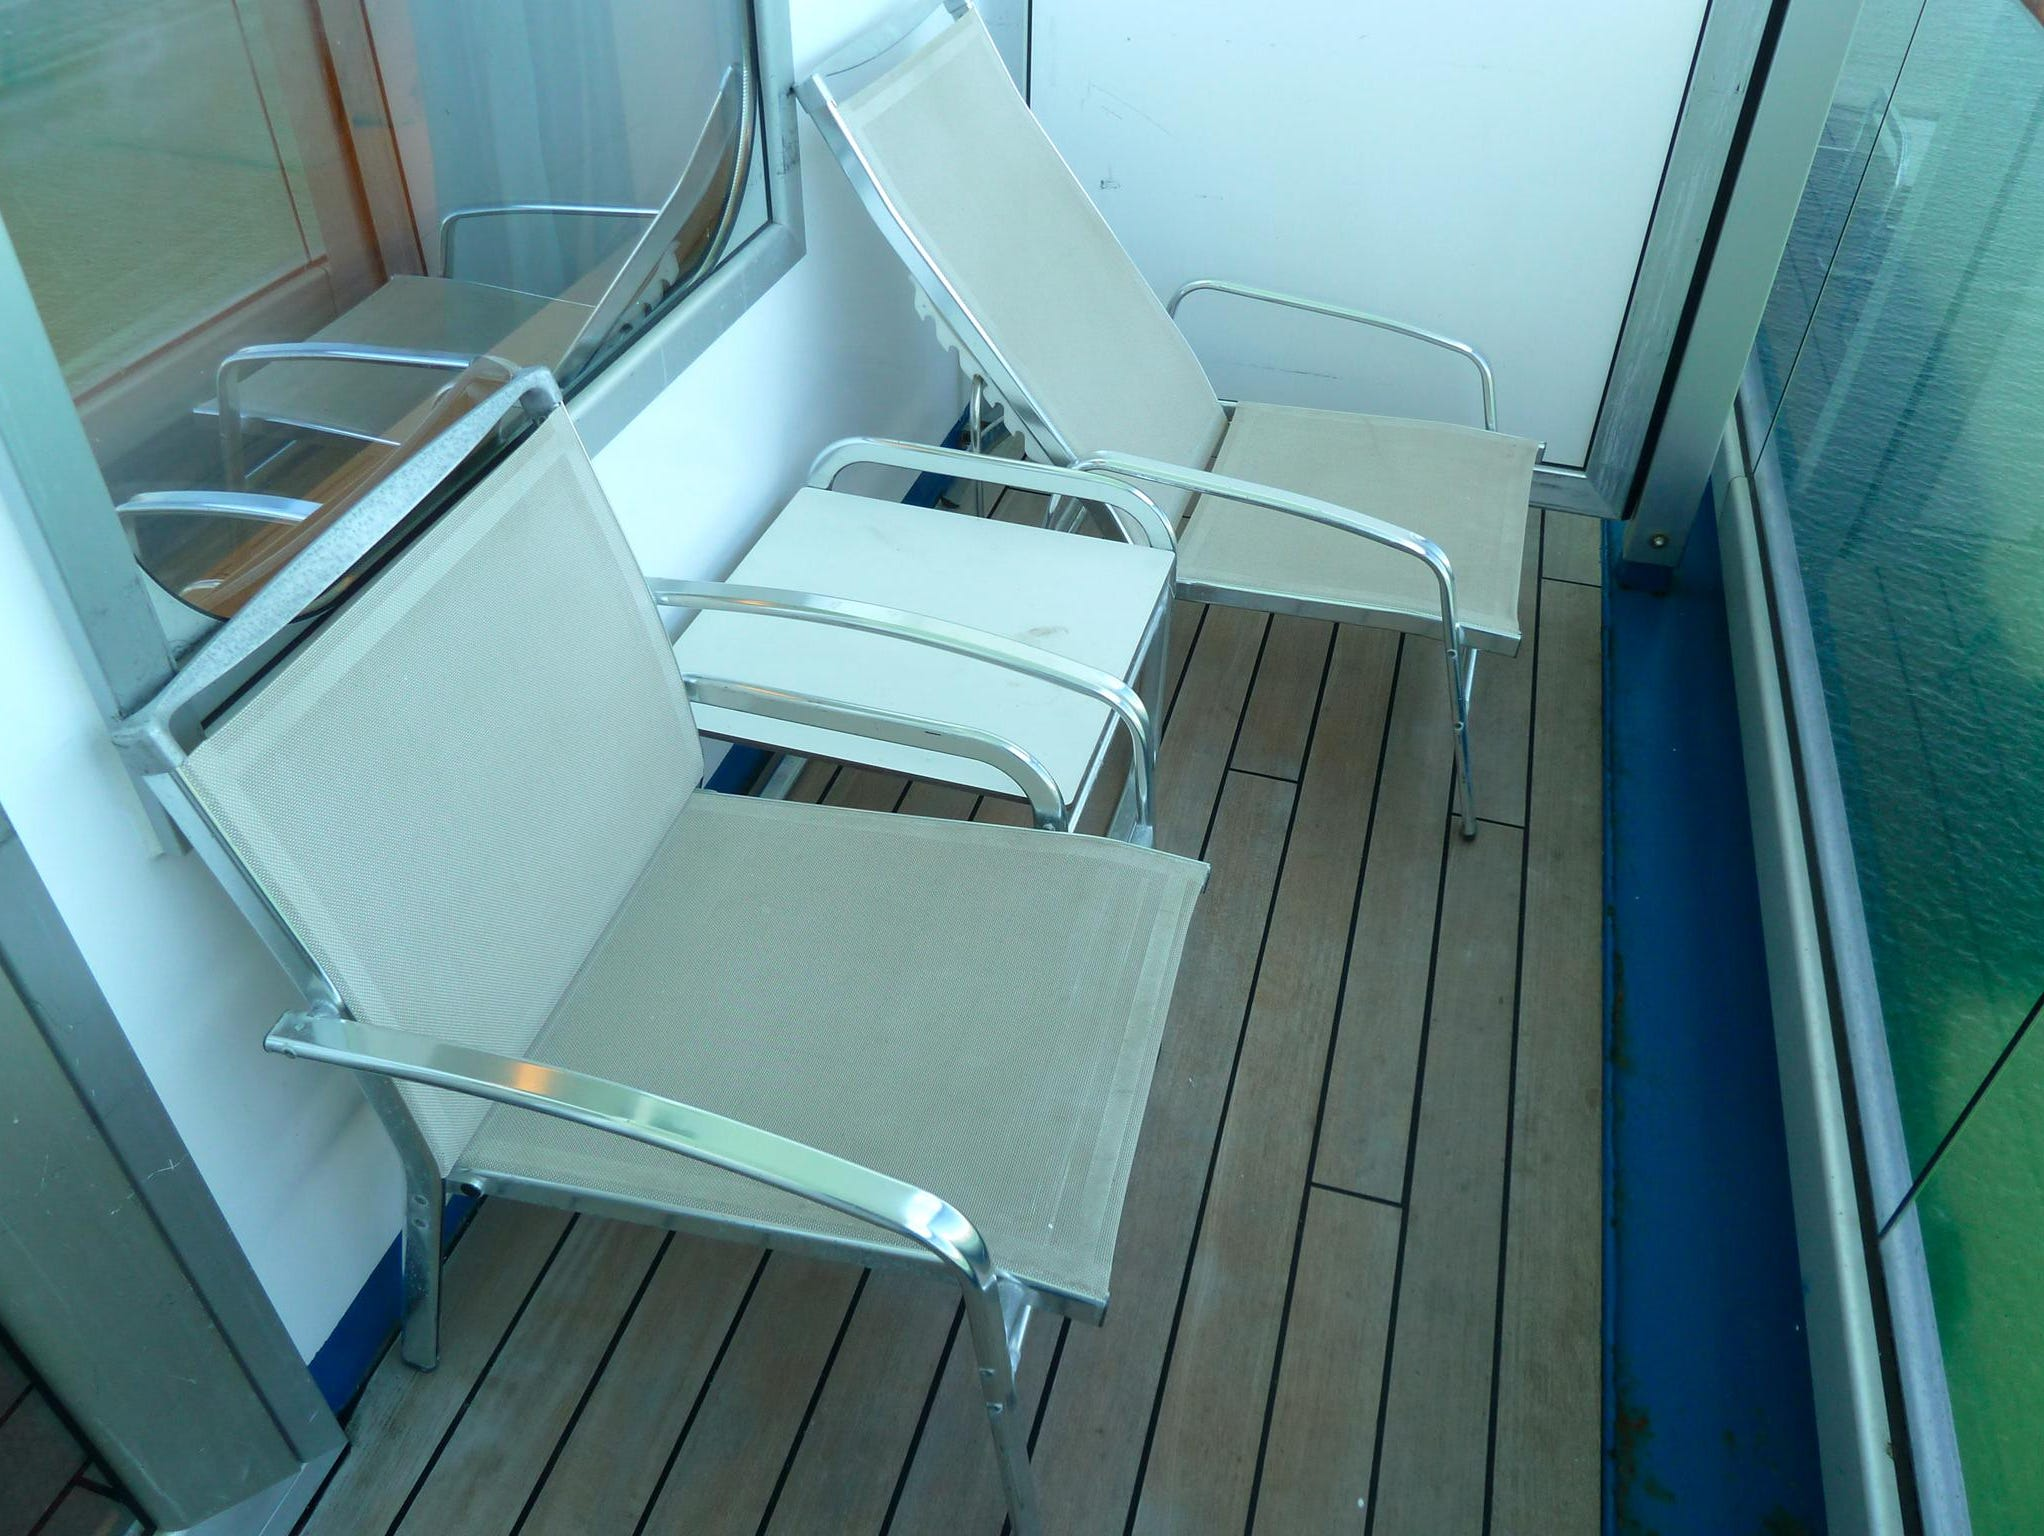 This is a balcony in an Ocean View With Balcony stateroom.